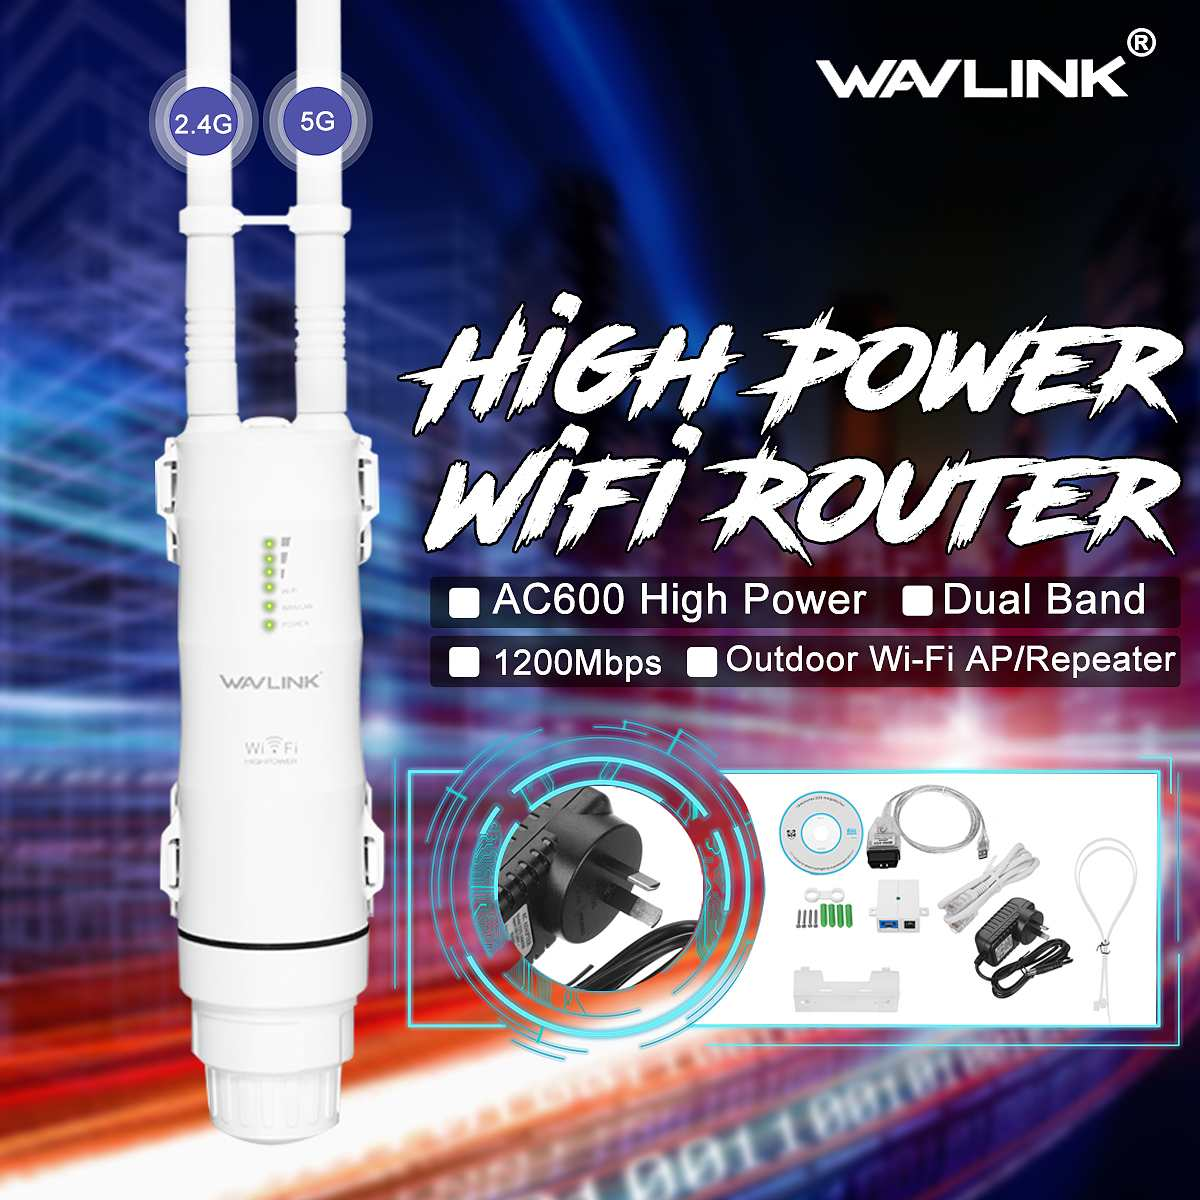 2018 290x125x60mm Wavlink AC600 2.4g/5G High Power Outdooor Waterproof WIFI Router/AP Repeater 2 Antennas AU Plug